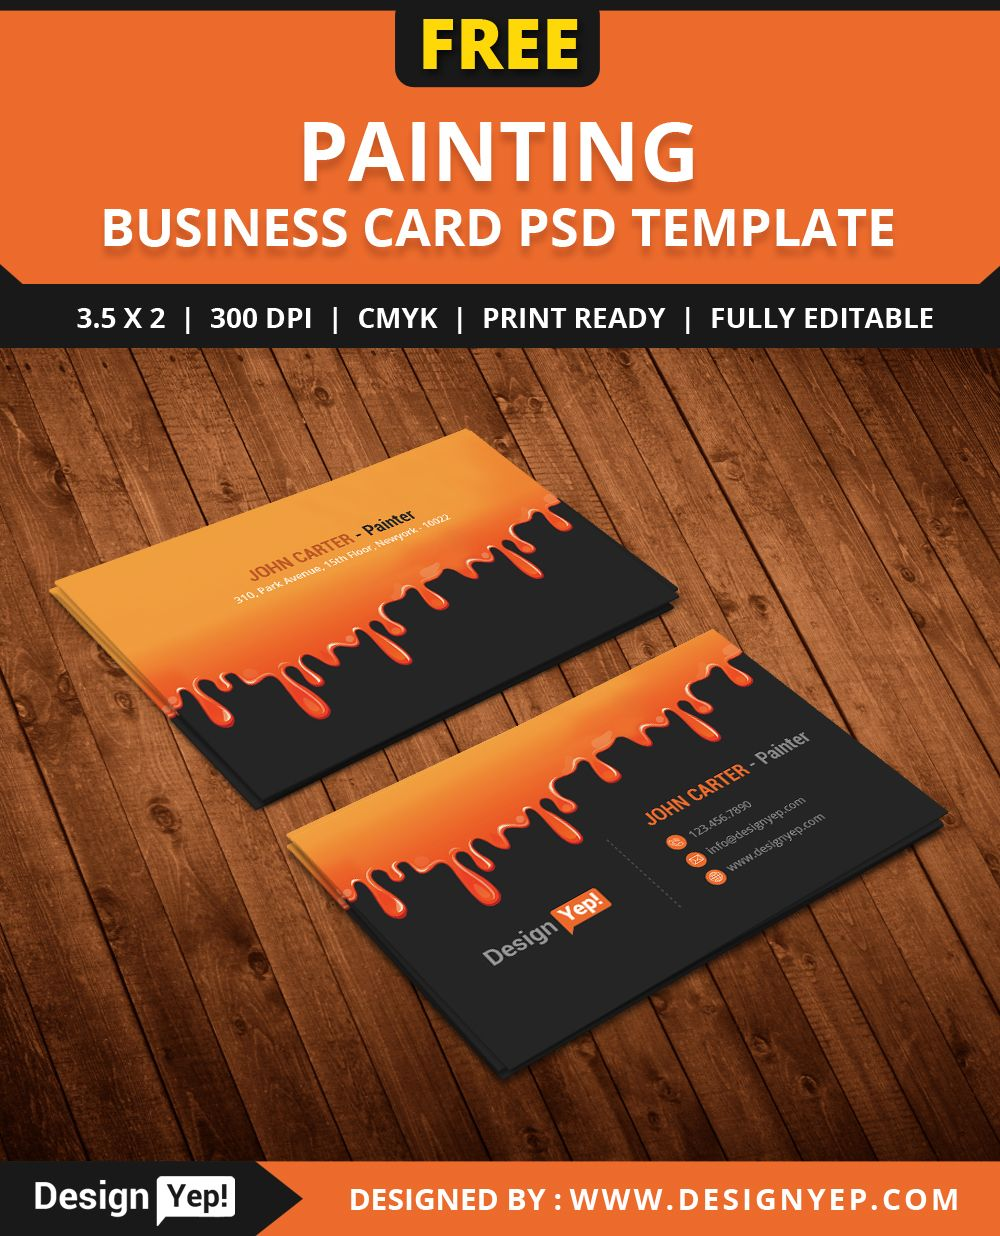 Free painting business card psd template free business card free painting business card psd template wajeb Images